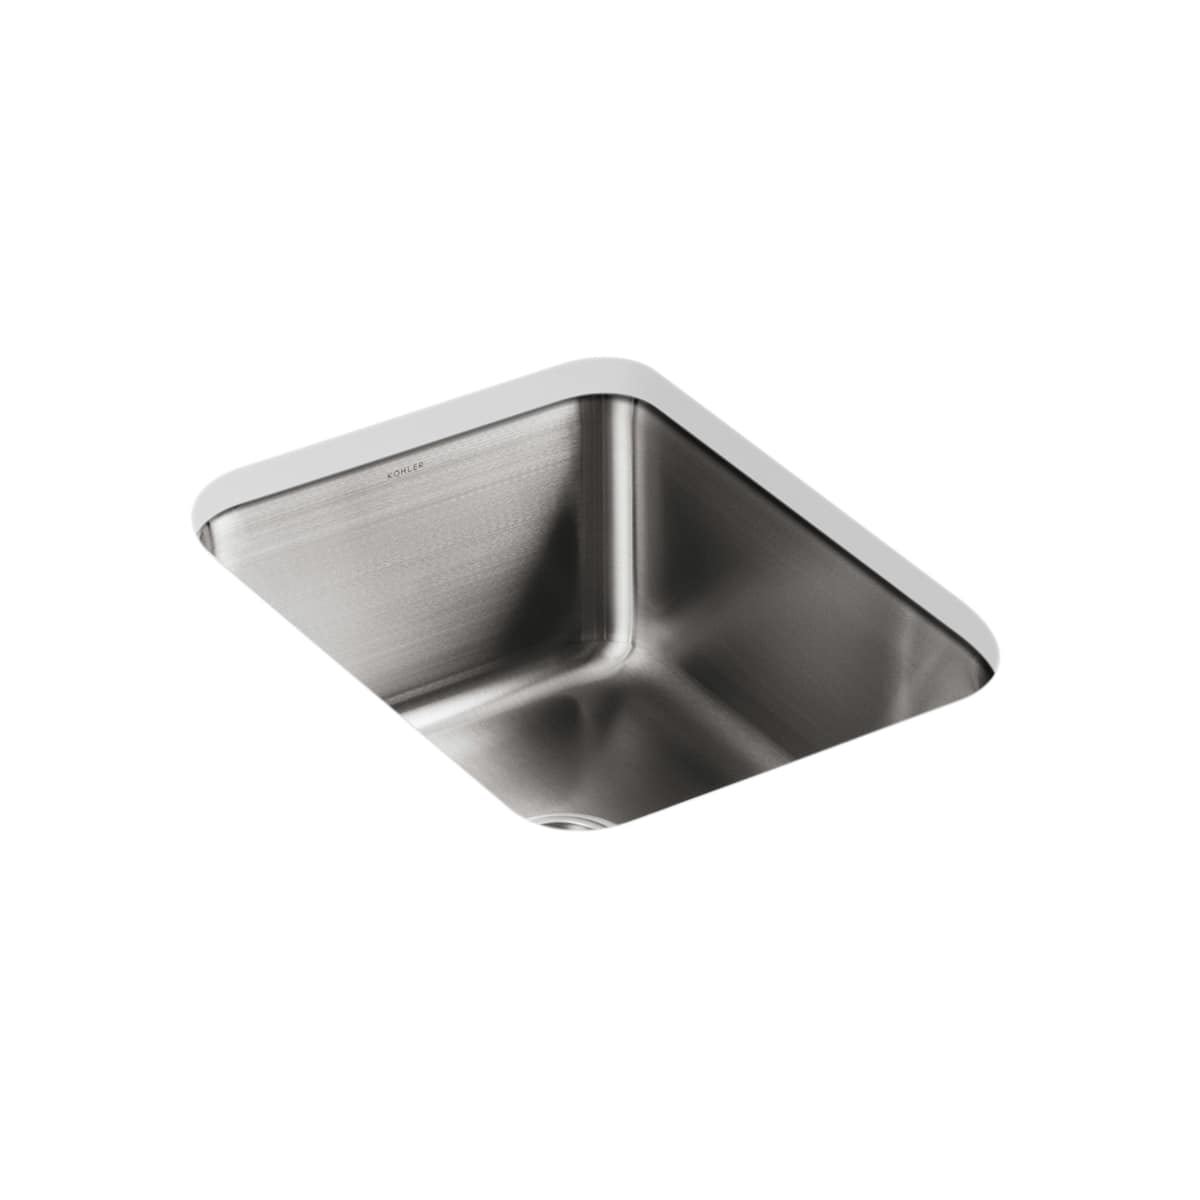 Kohler K 3163 Na Stainless Steel Single Basin Stainless Steel Kitchen Sink From The Undertone Series Faucet Com